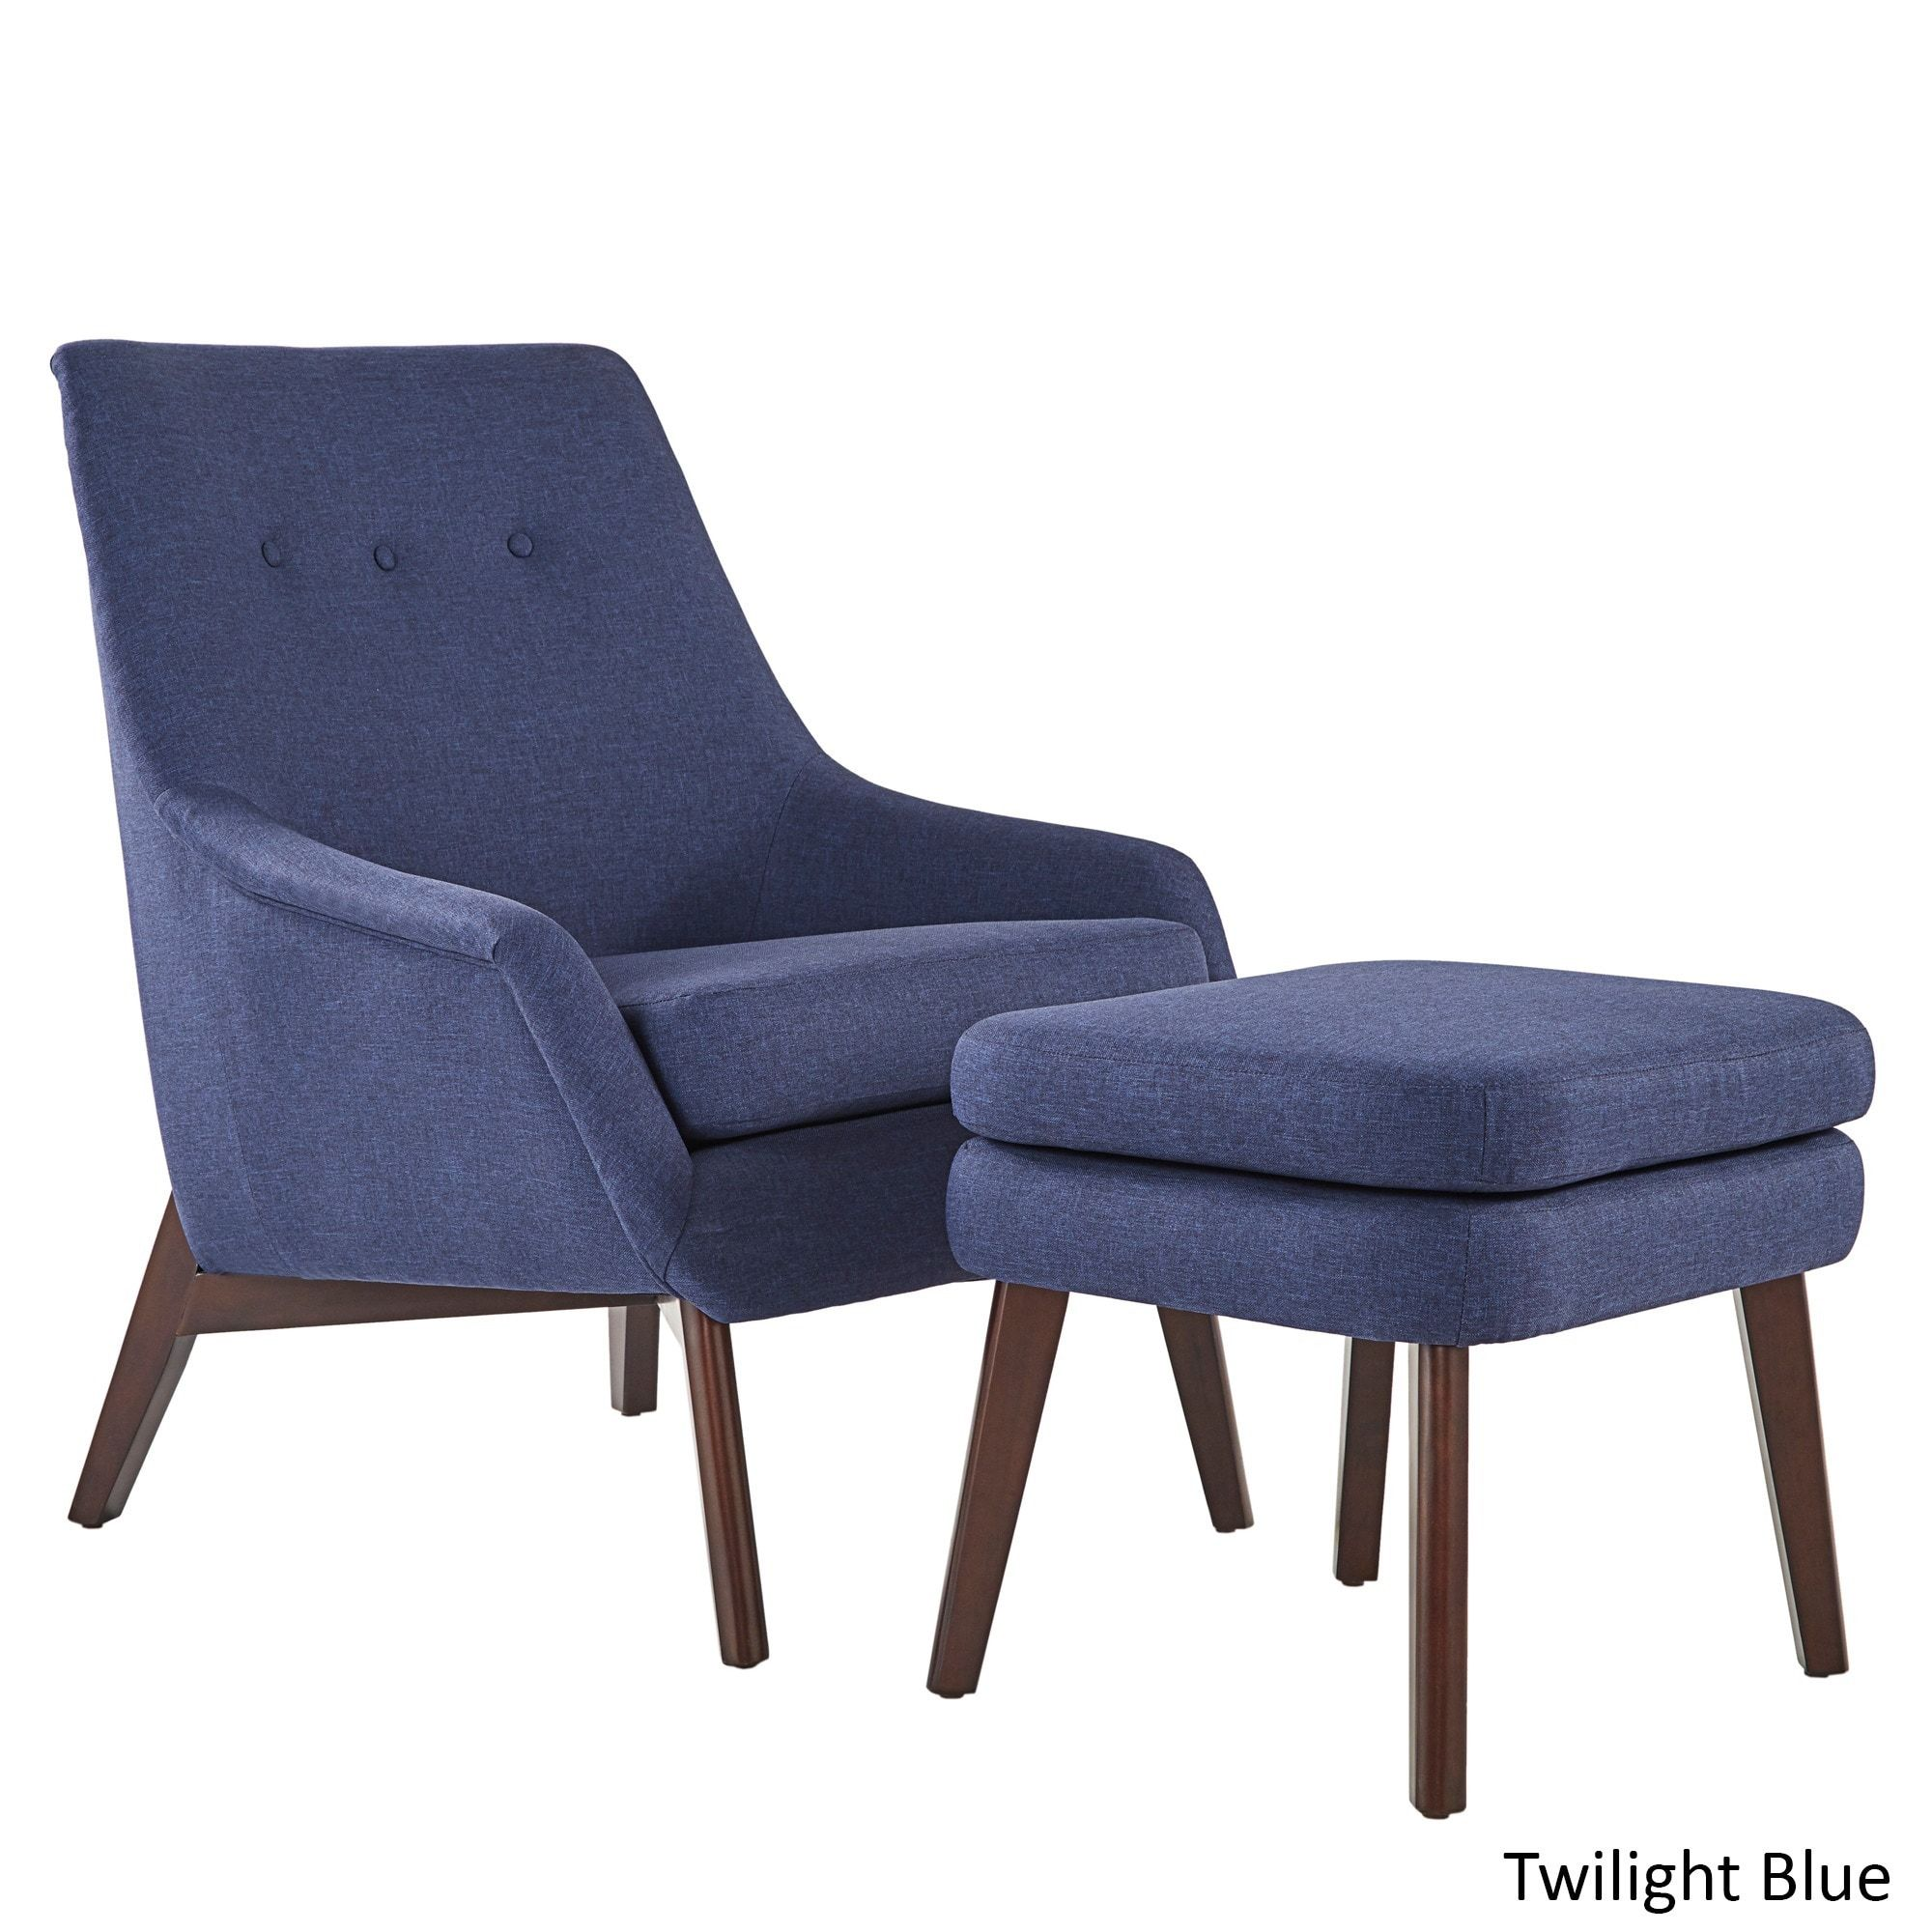 ottomans back garden and accent tufted home button product carrington chairs arvika high velvet carson chair overstock